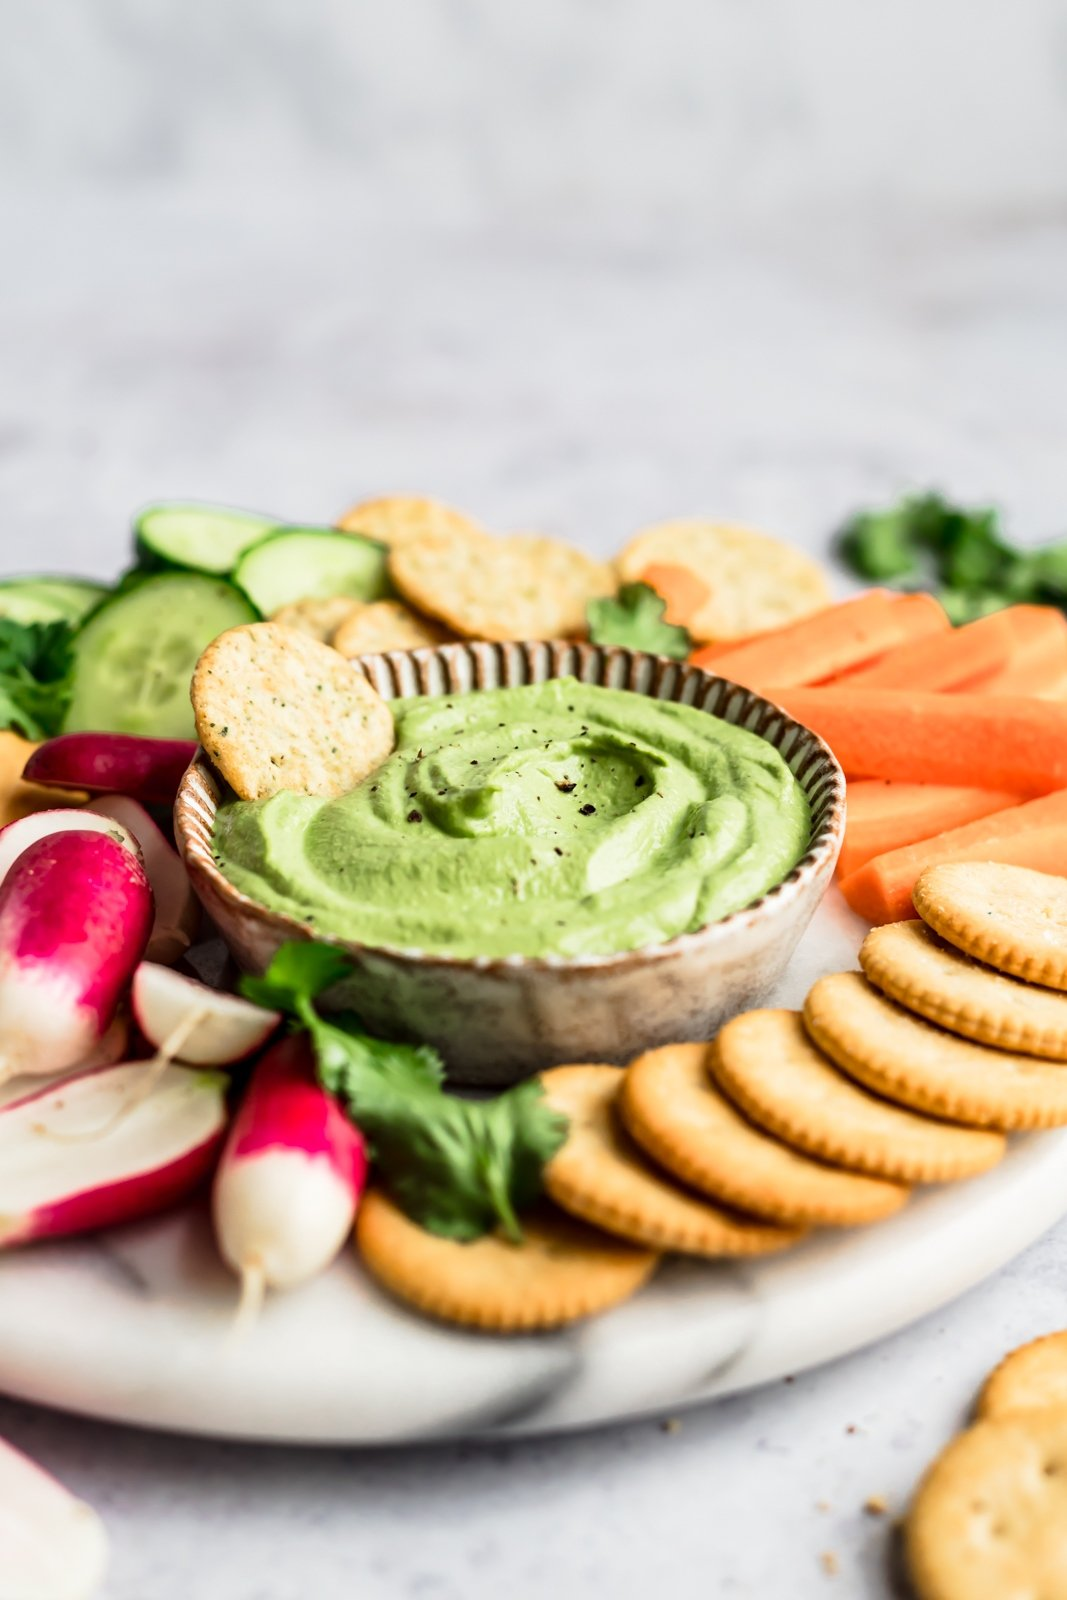 spicy green cashew dip on a platter with a cracker in it